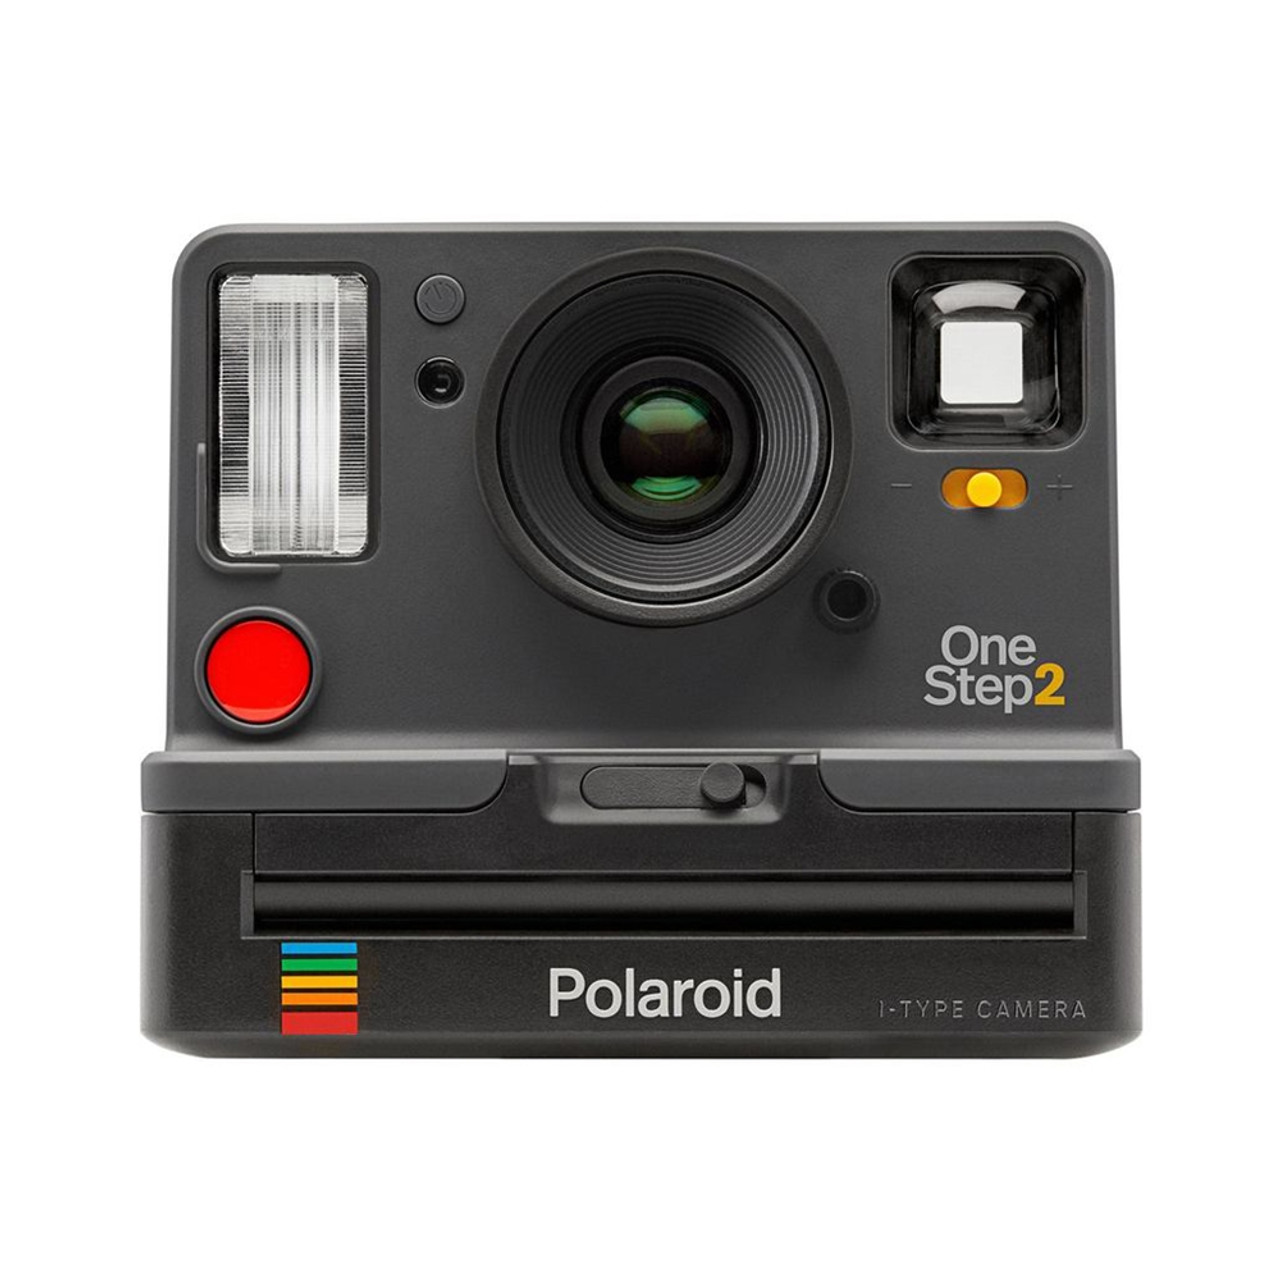 POLAROID ONESTEP 2 INSTANT FILM CAMERA (GRAPHITE)